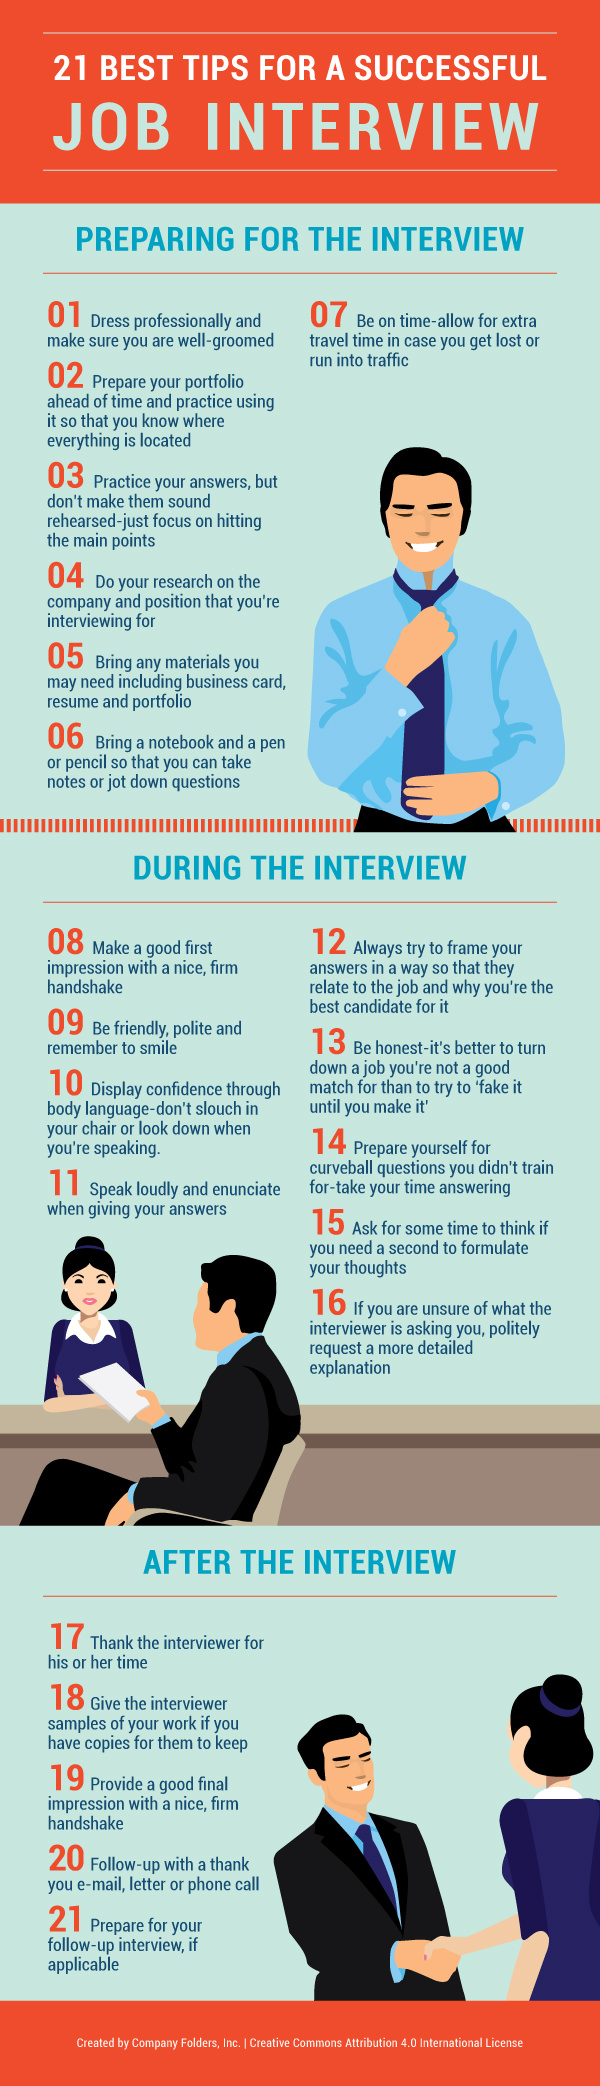 Infographic- 21 best tips for a successful job interview